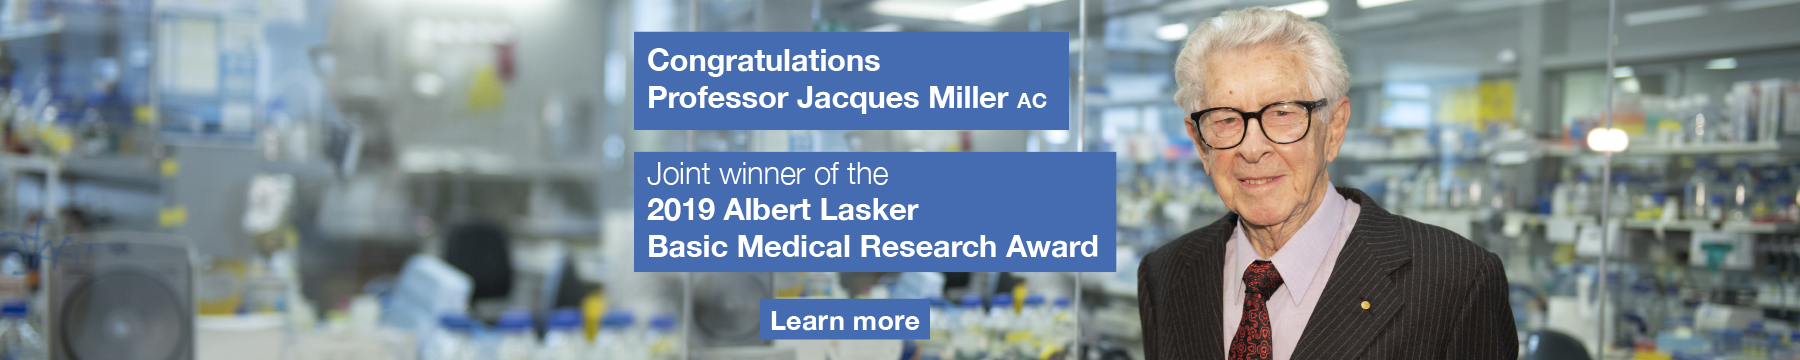 Jacques Miller Lasker Award graphic